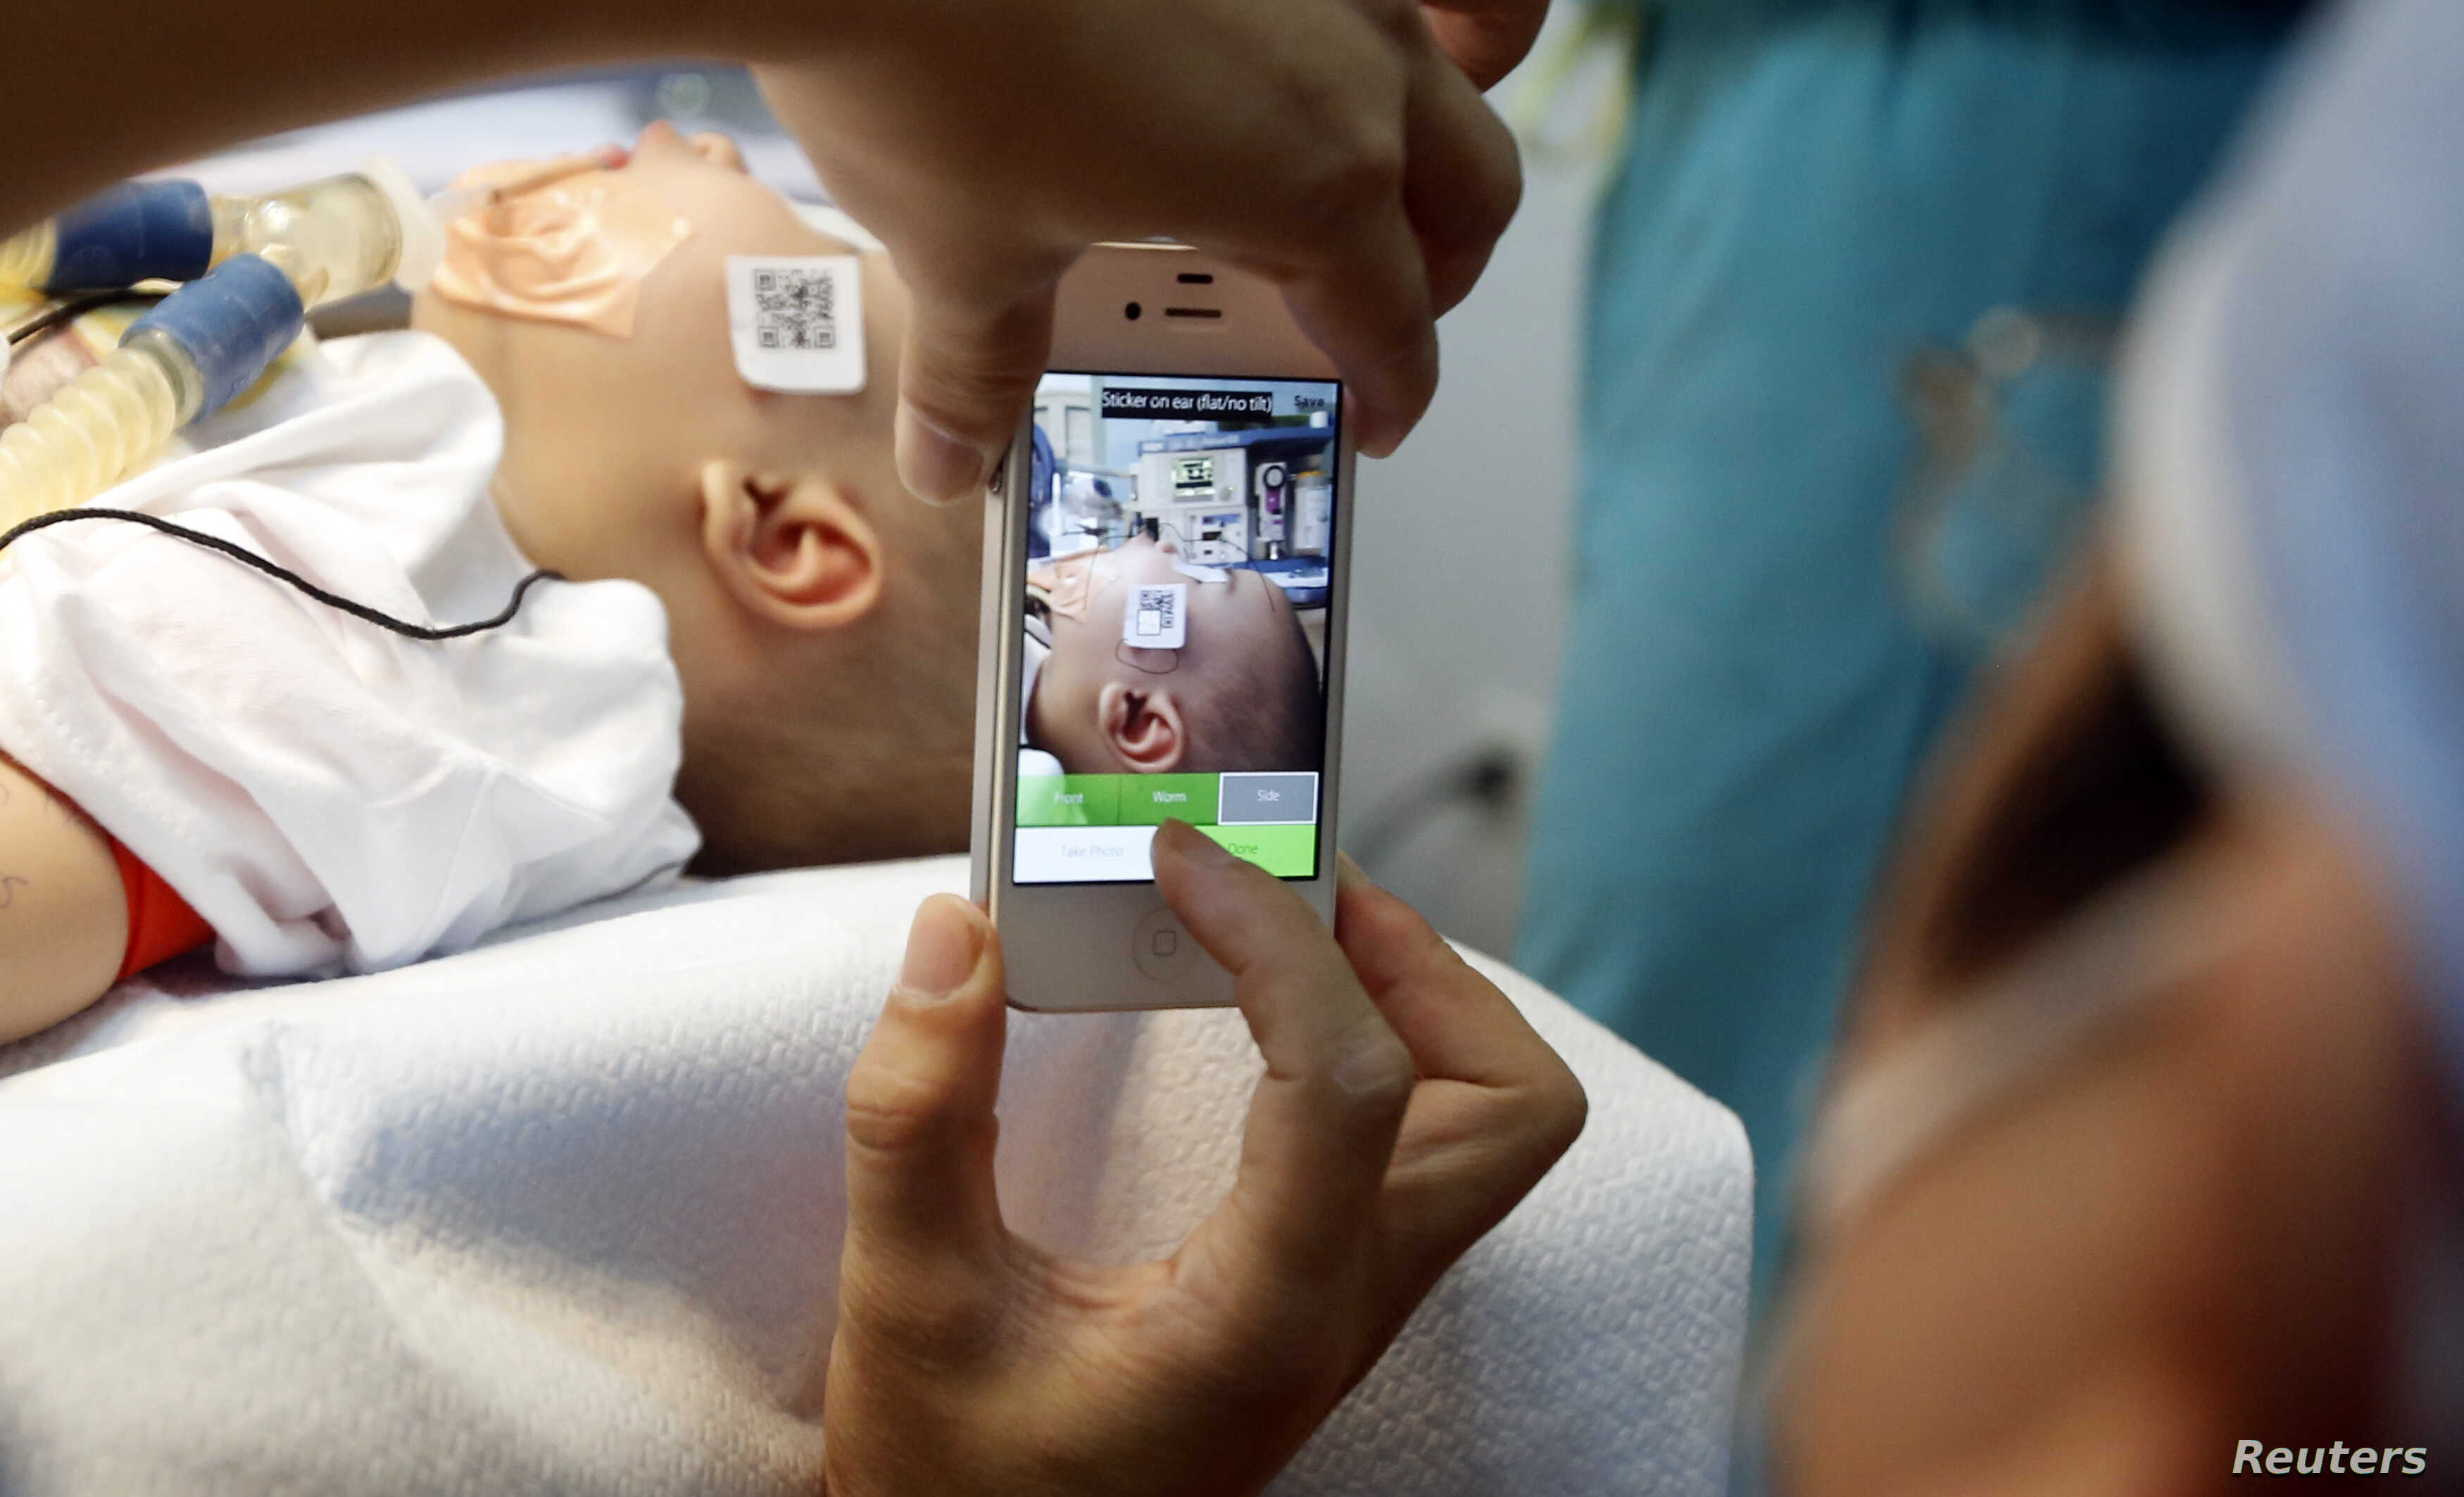 A doctor uses a smartphone to take a photo of a child with facial deformity before surgery at the Vietnam Cuba hospital in Hanoi, Nov. 18, 2014.